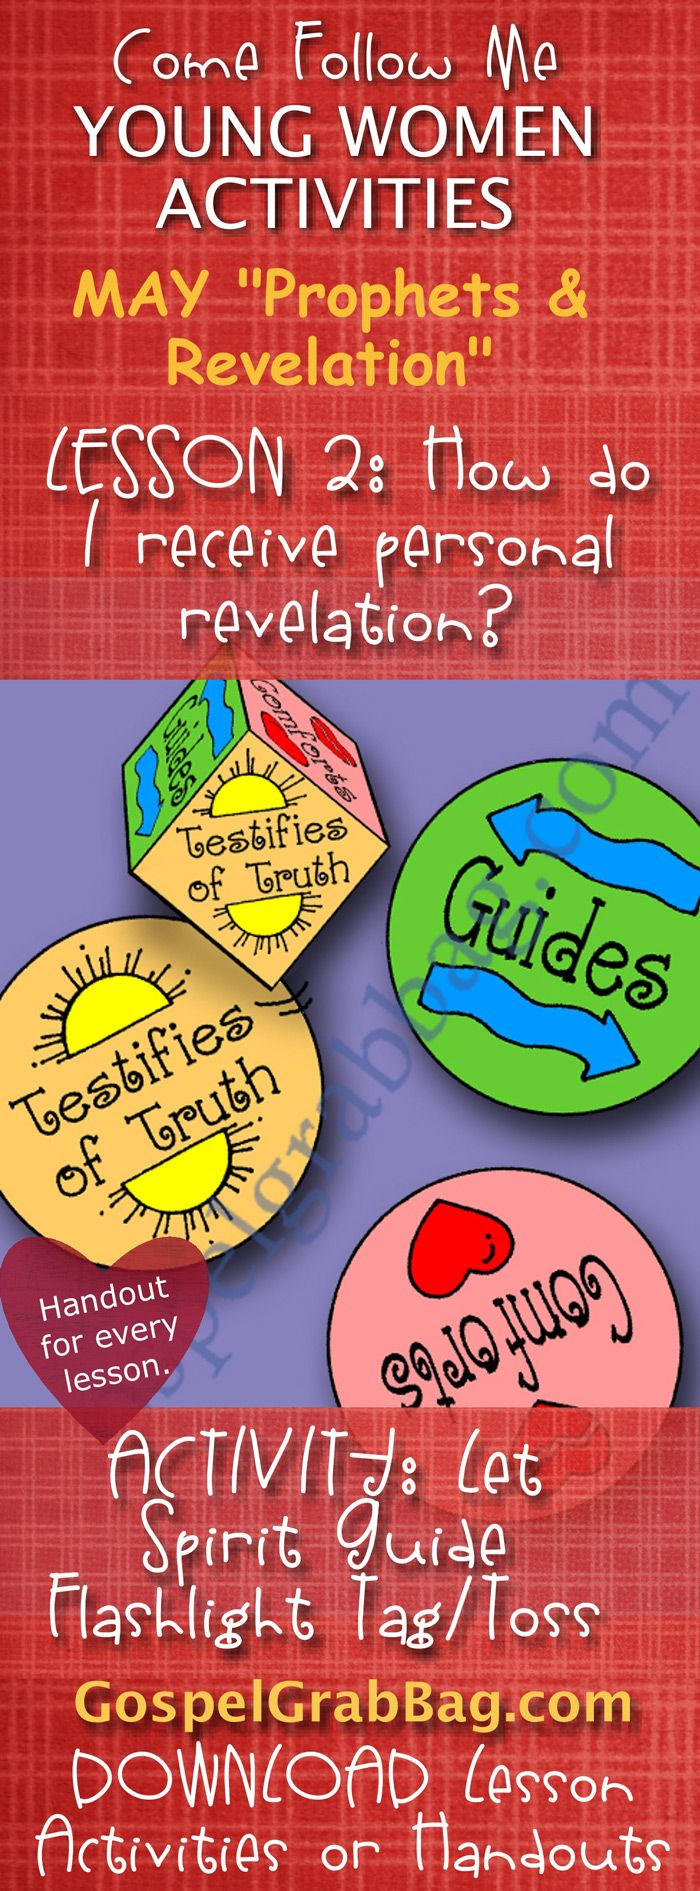 REVELATION - HOLY GHOST: Come Follow Me – LDS Young Women Activities ...